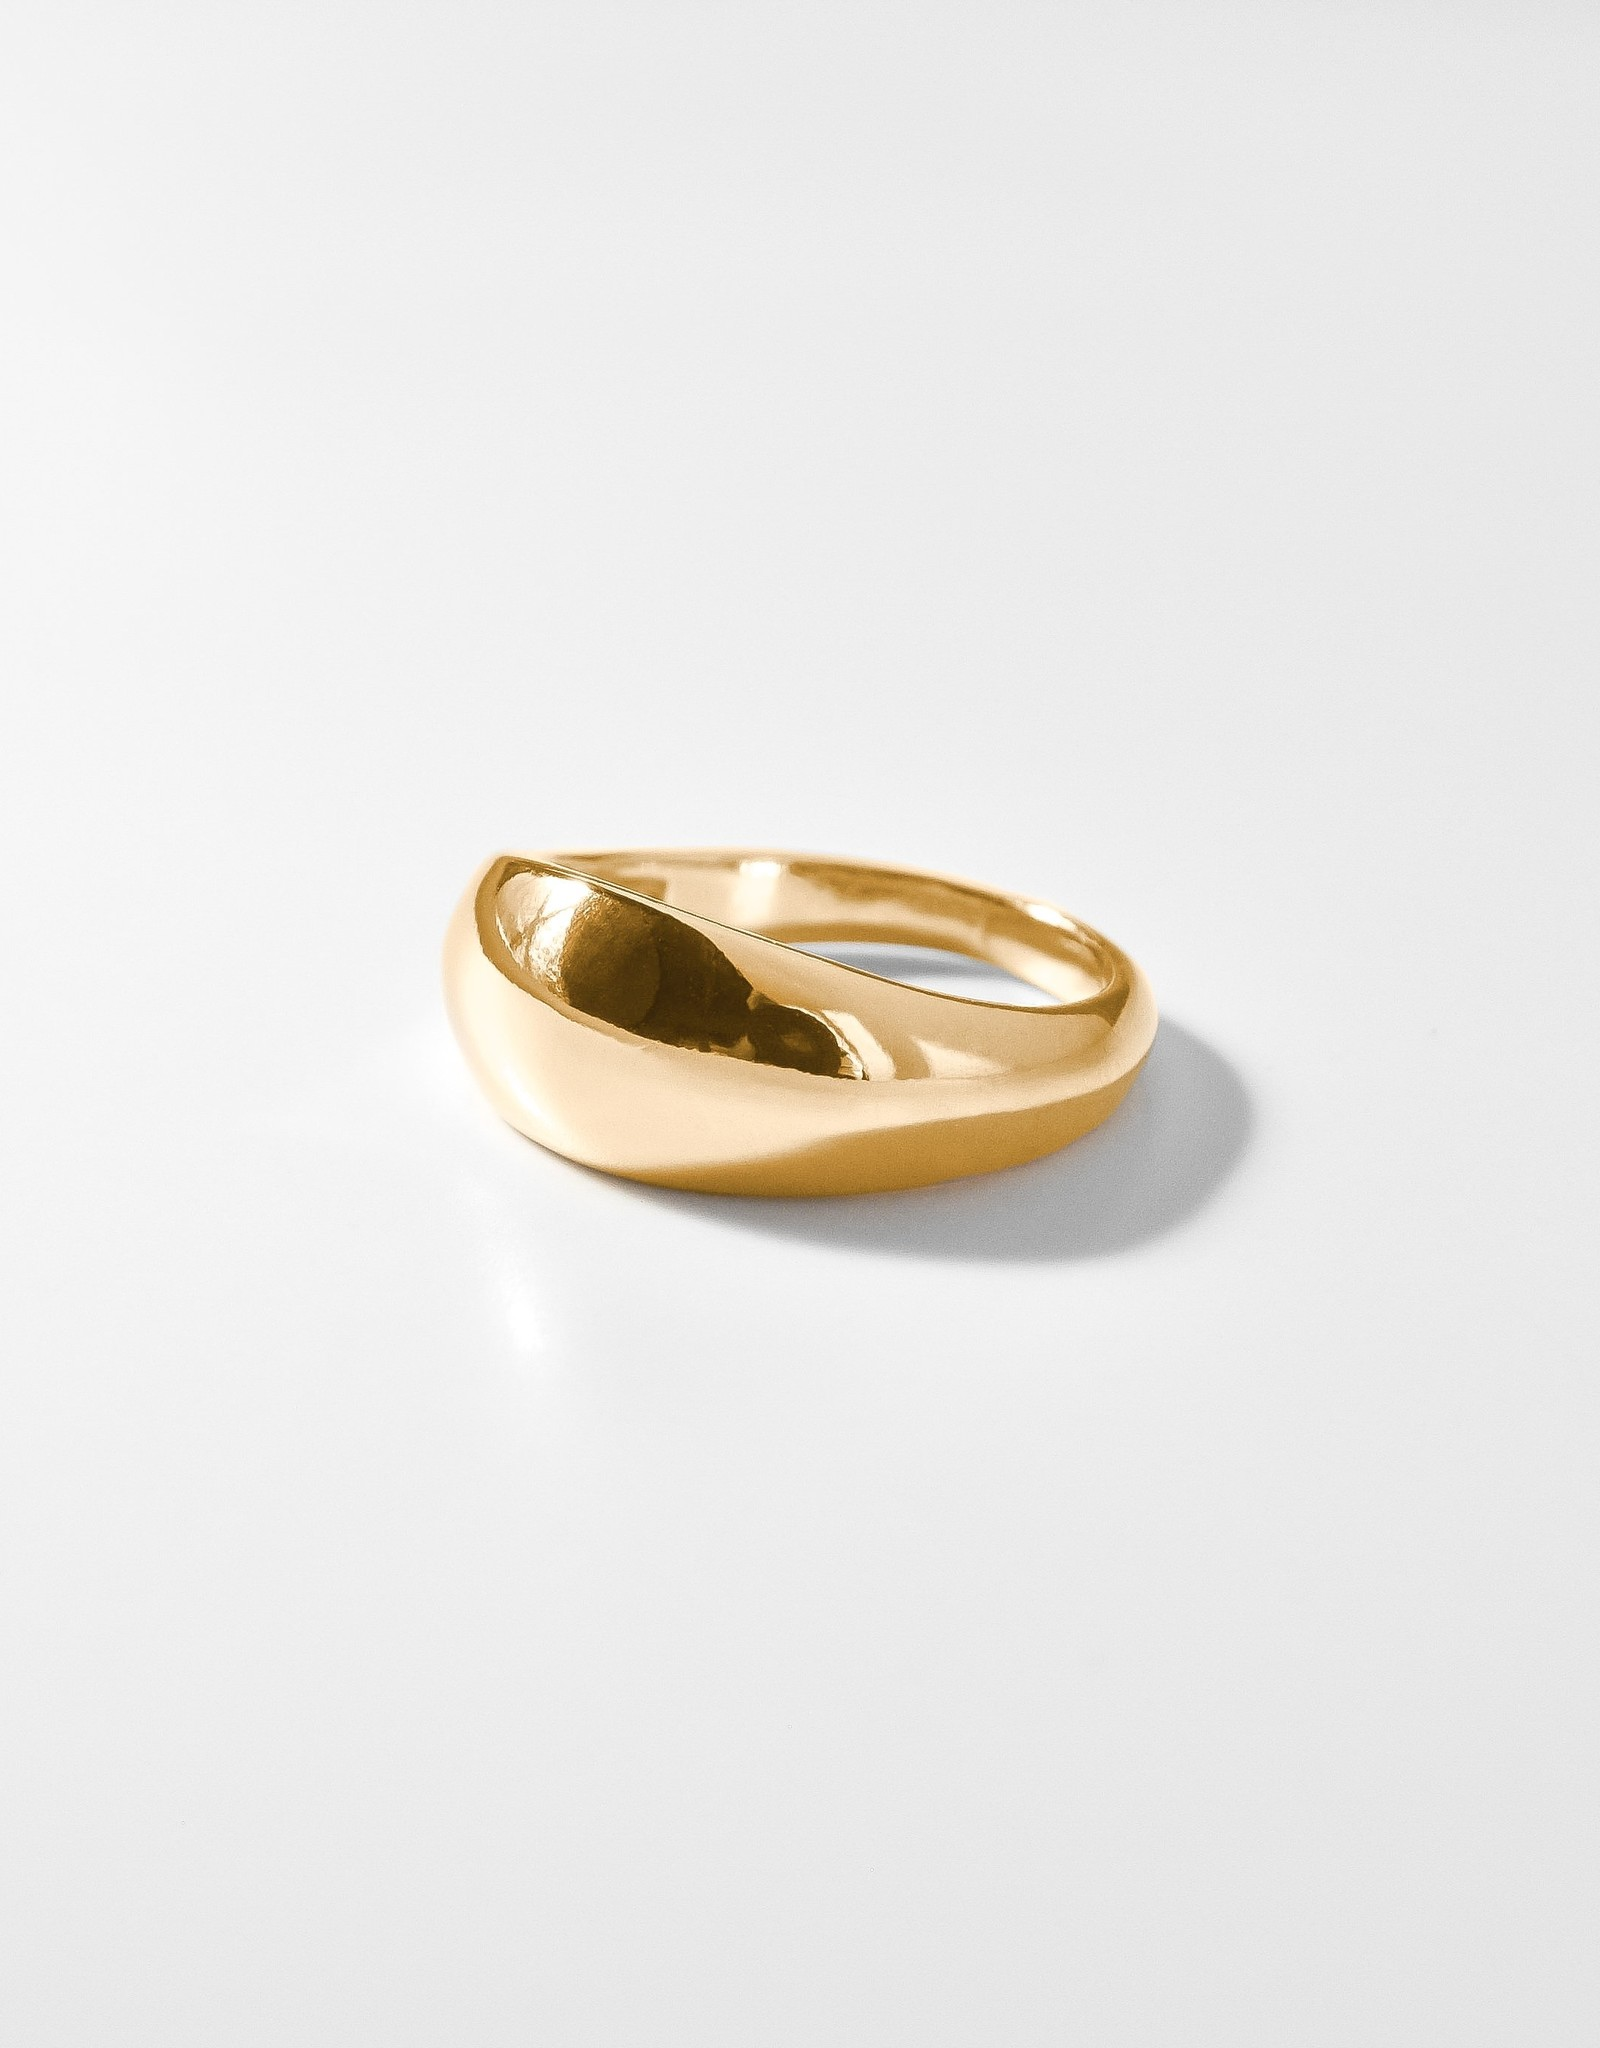 Thatch Jewelry Hendry Ring